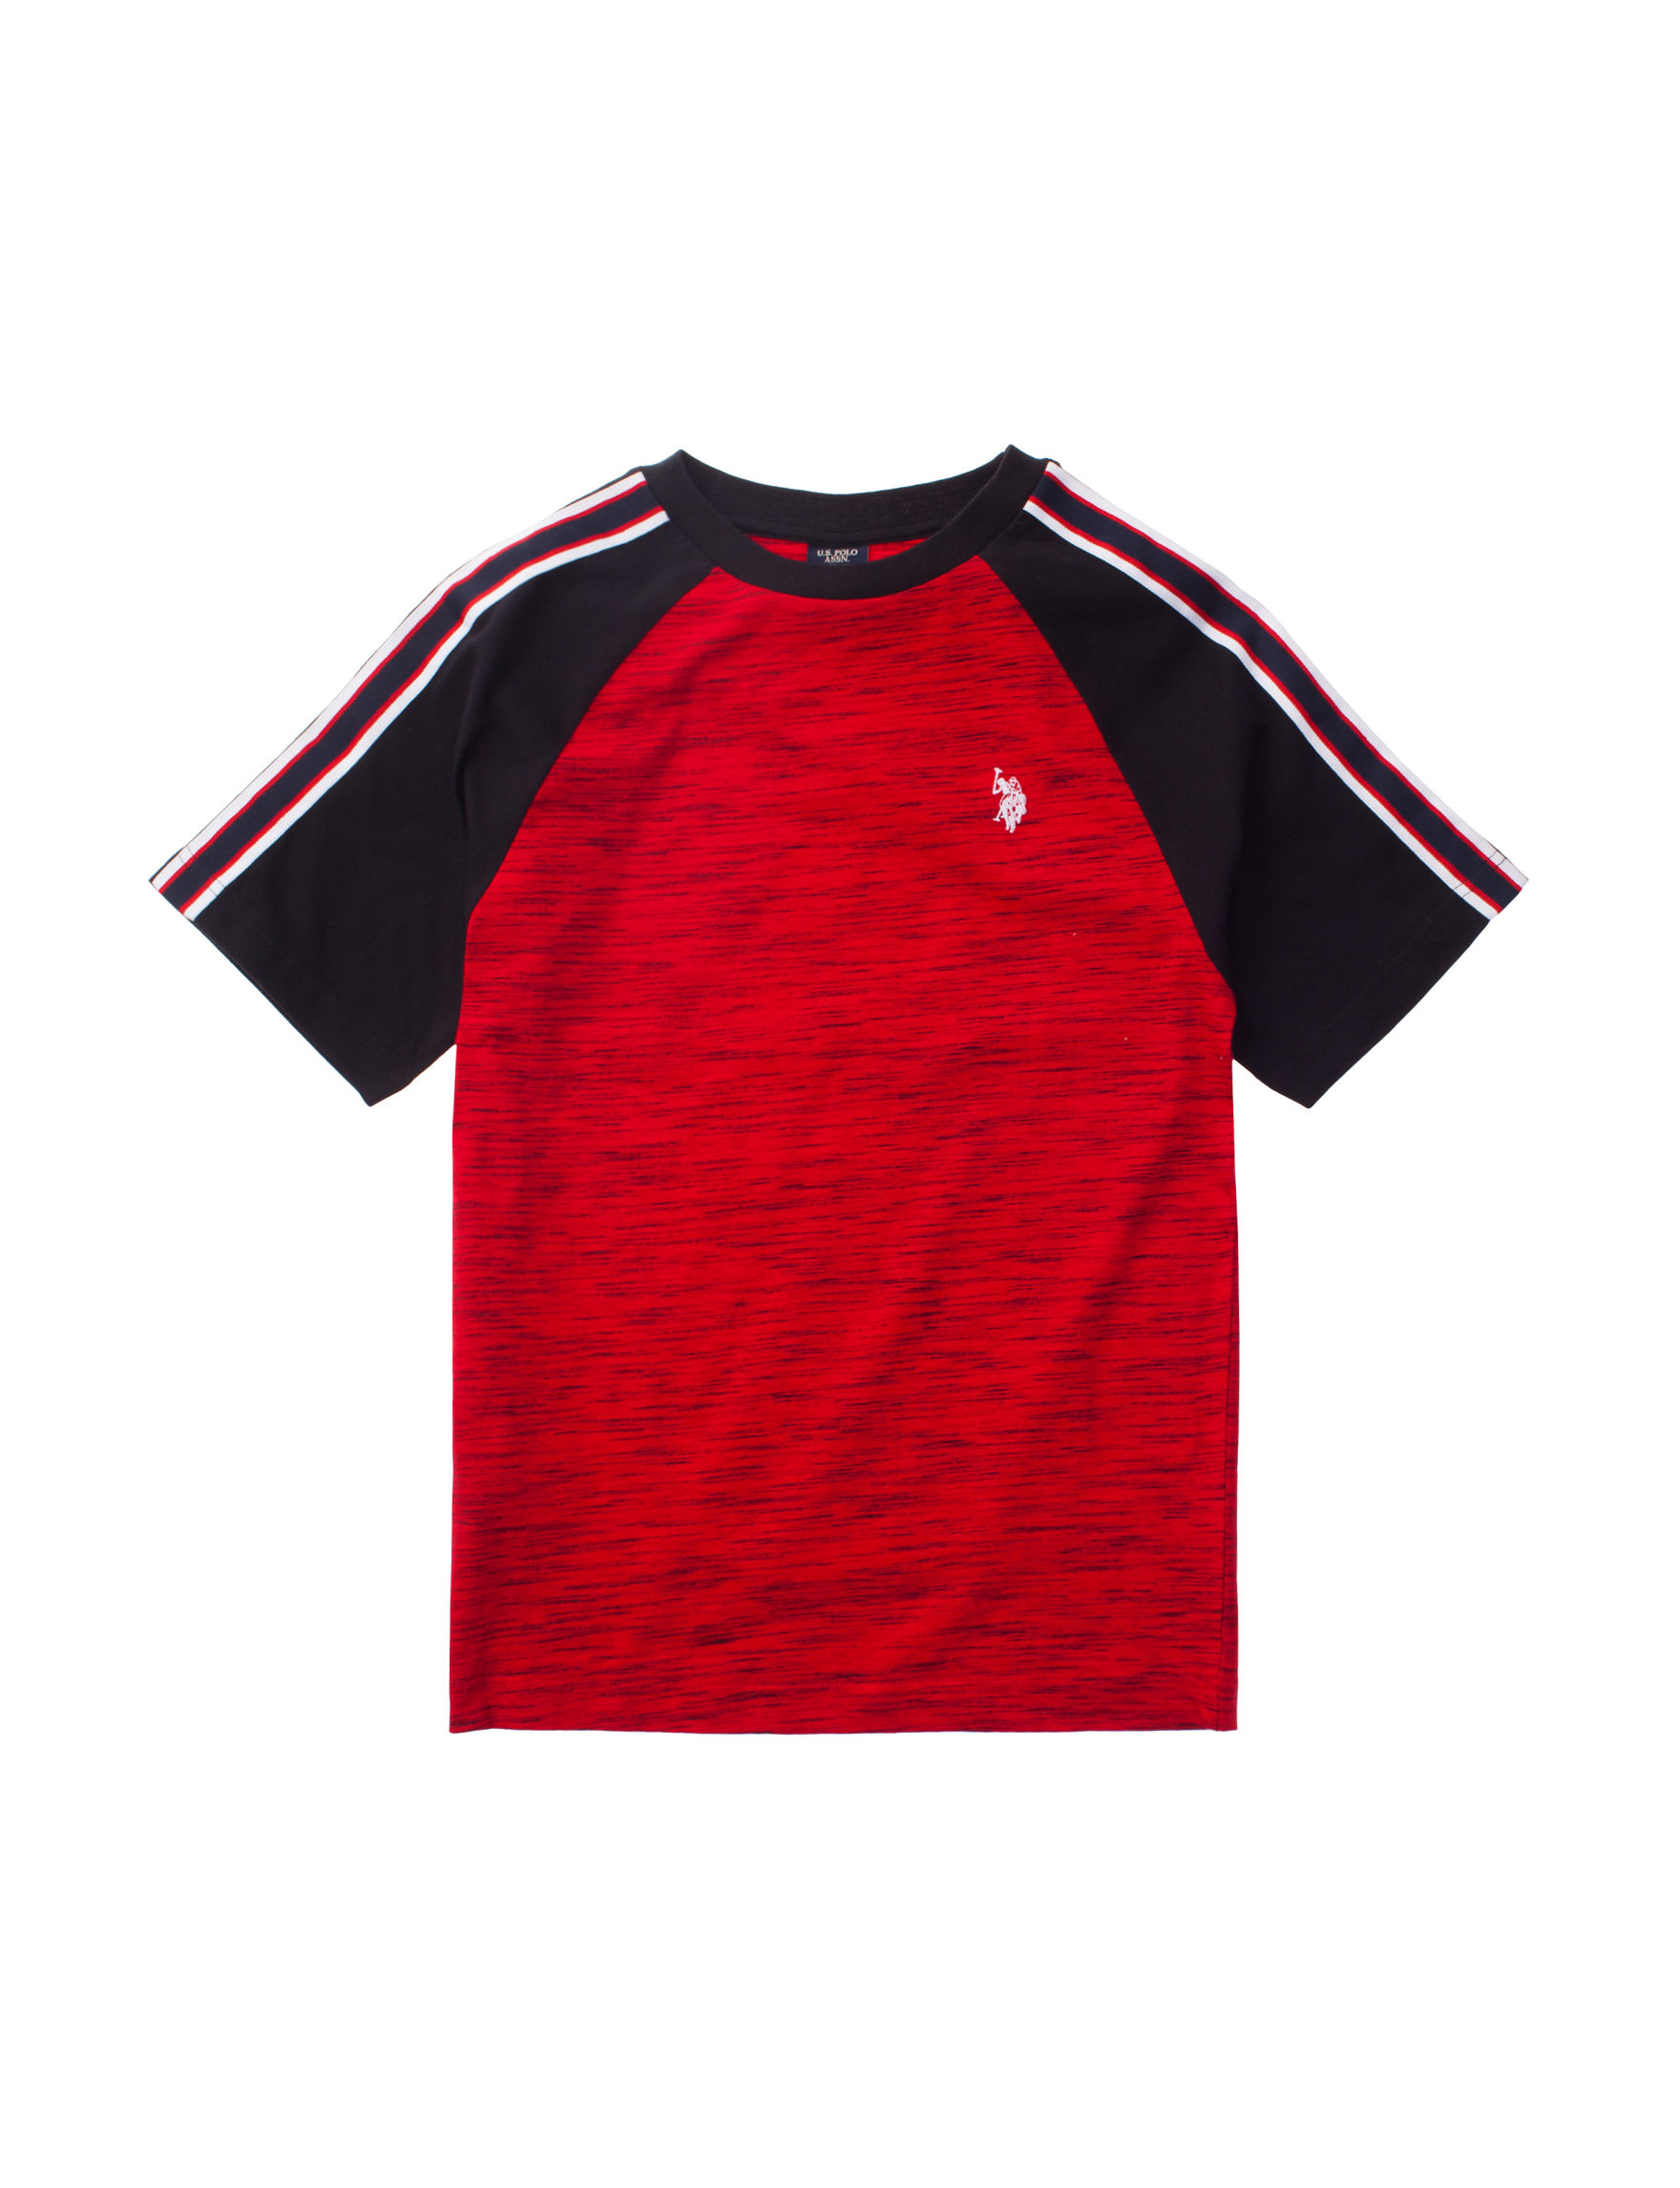 U.S. Polo Assn. Red / Black Tees & Tanks